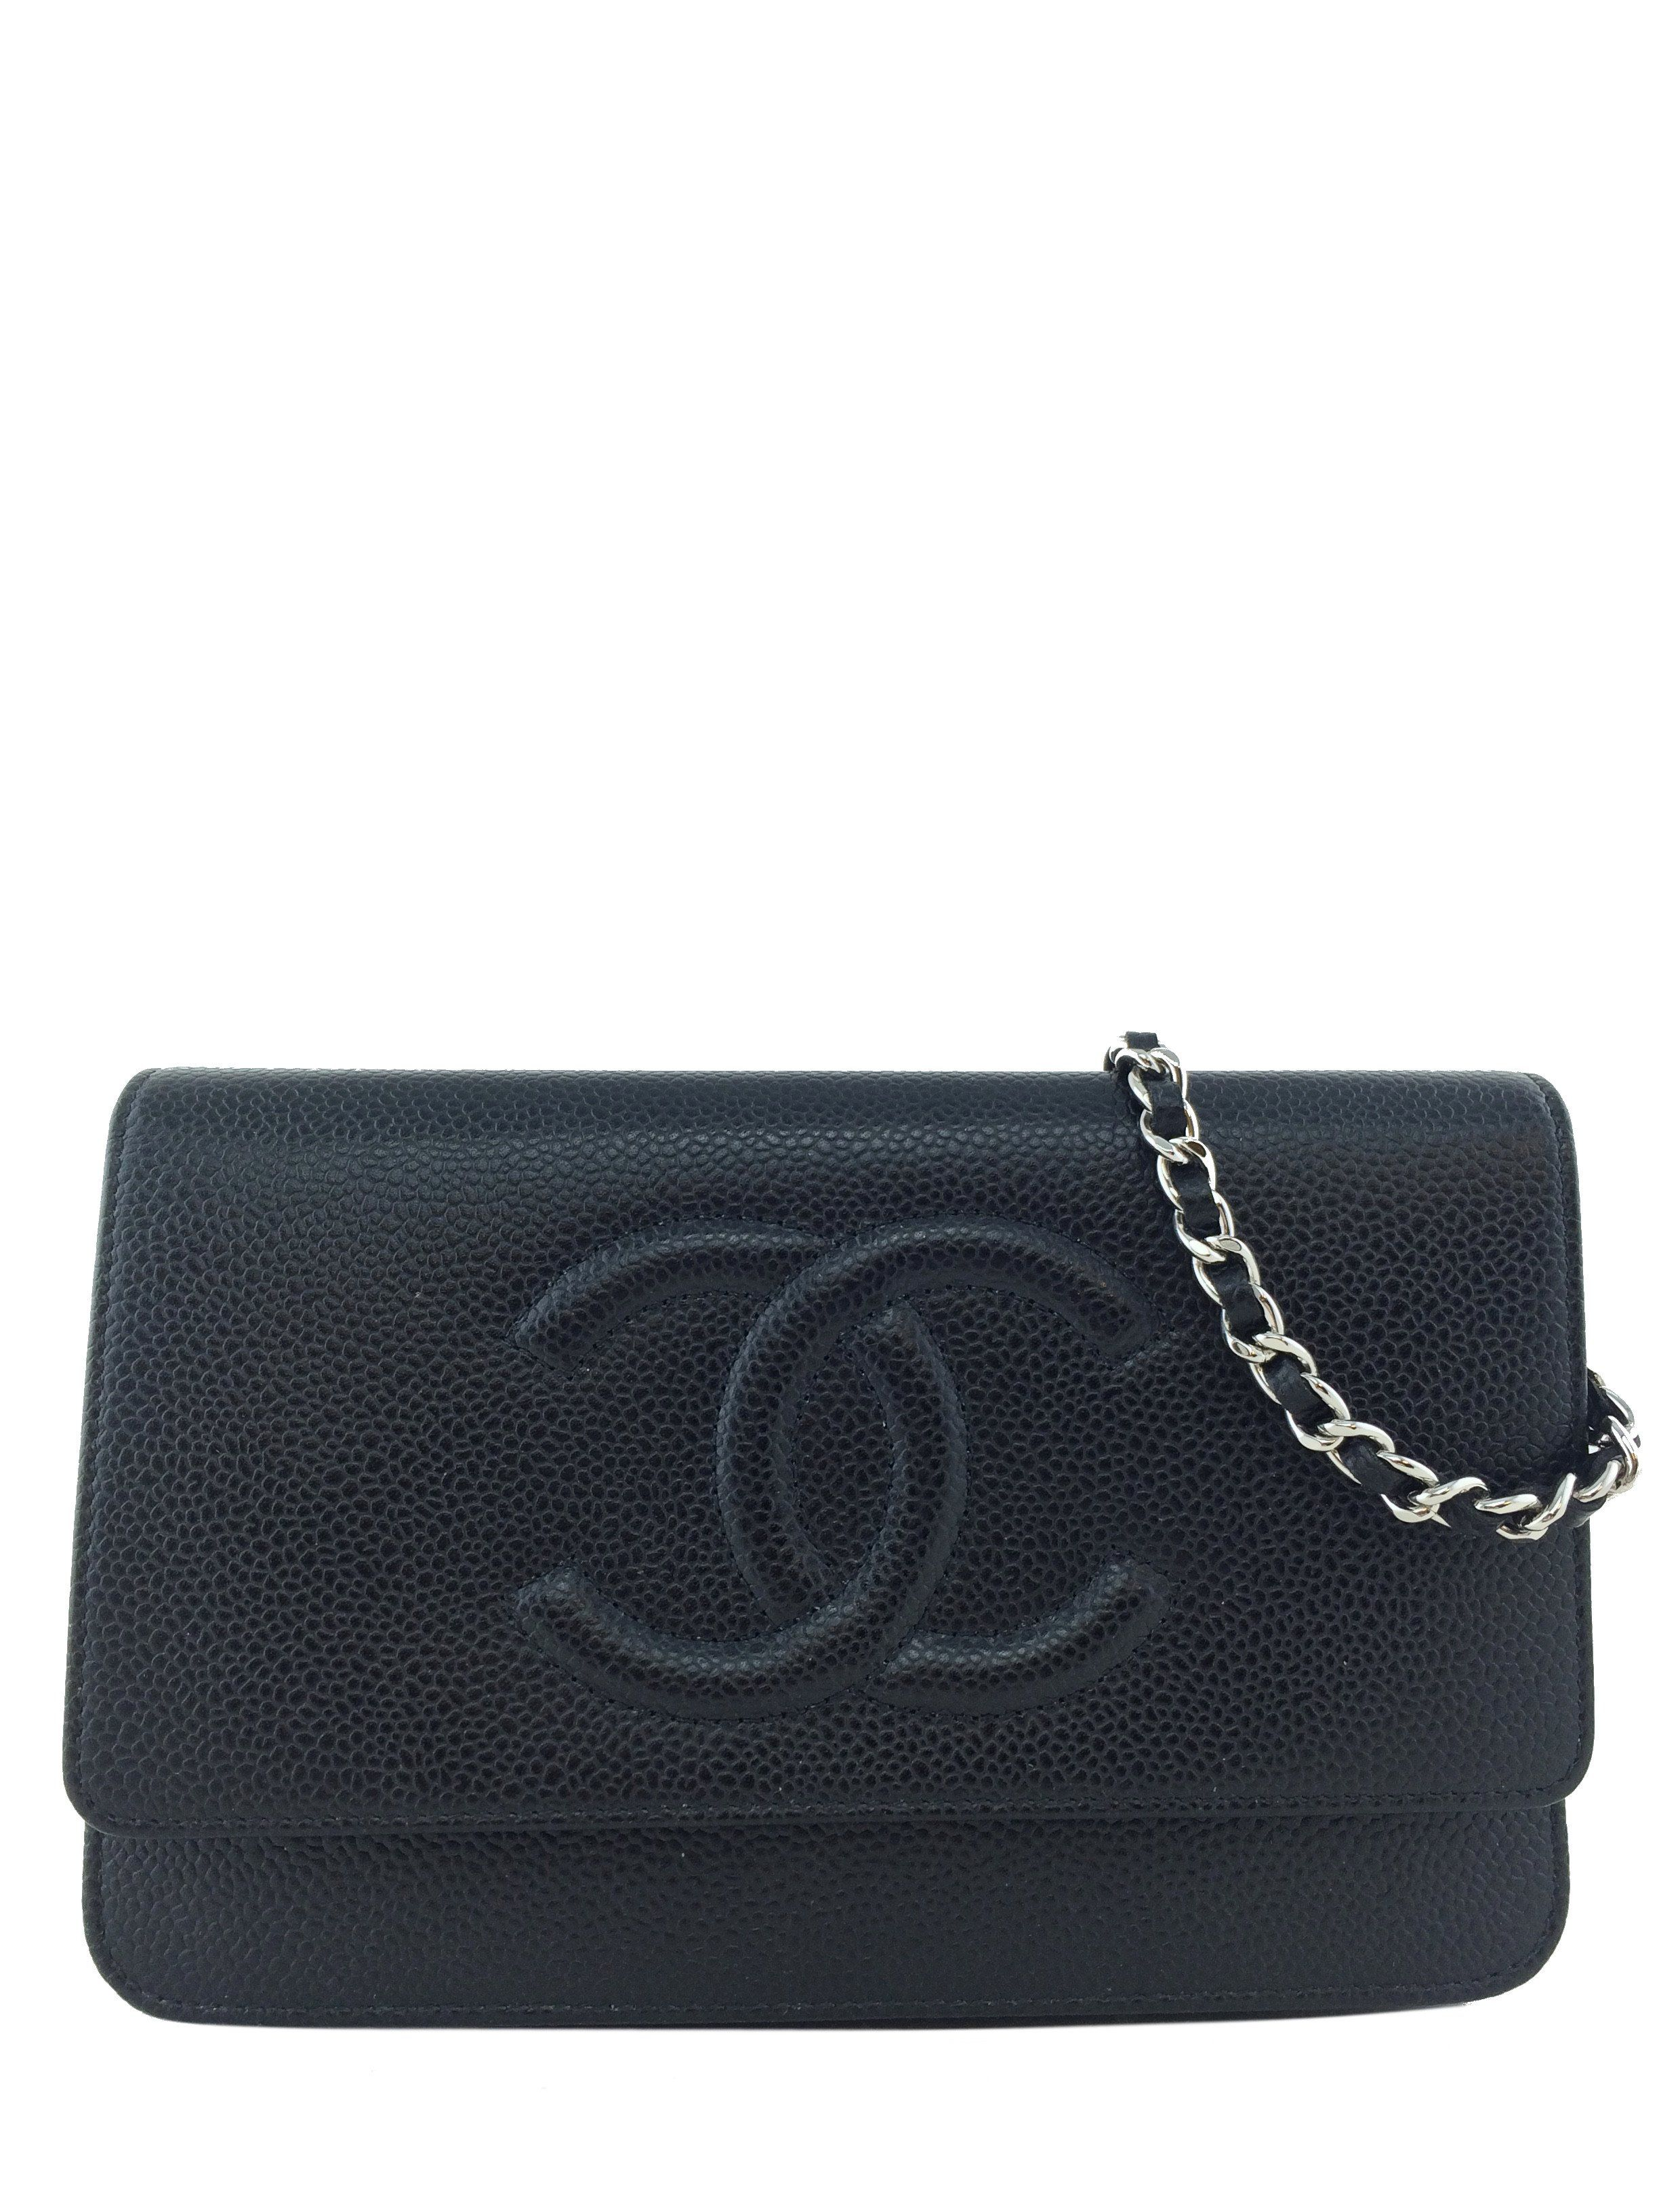 9e16d4f25 Chanel Caviar Wallet on Chain WOC Timeless Crossbody Bag | Products